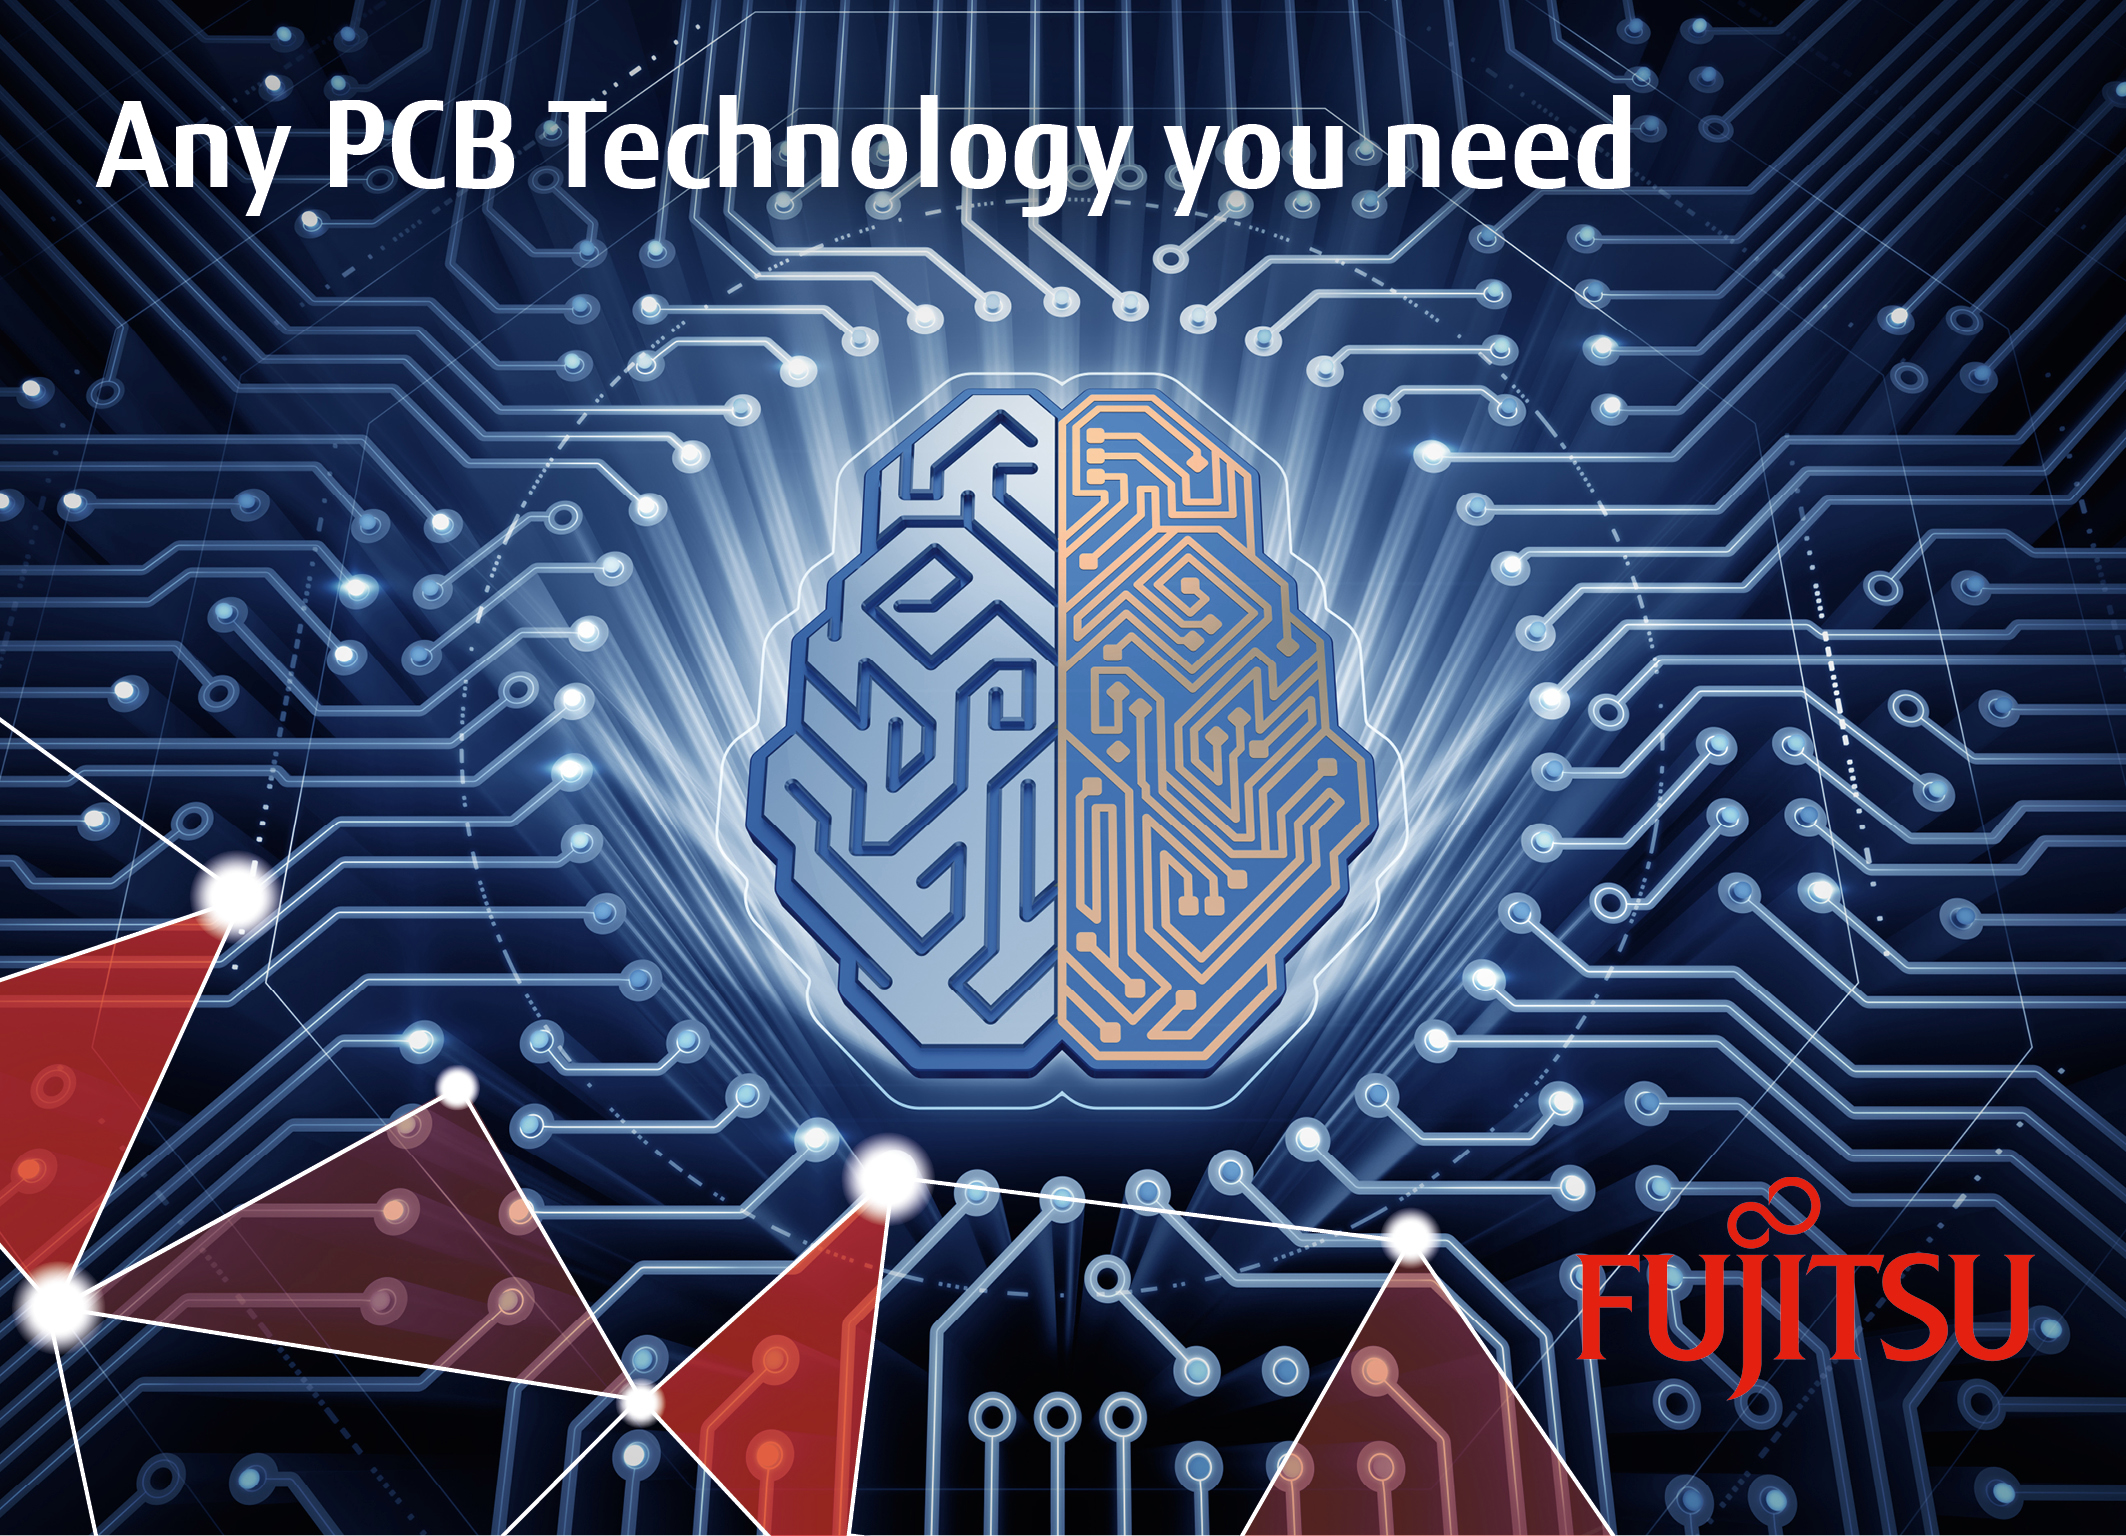 FEEU expands PCB offering